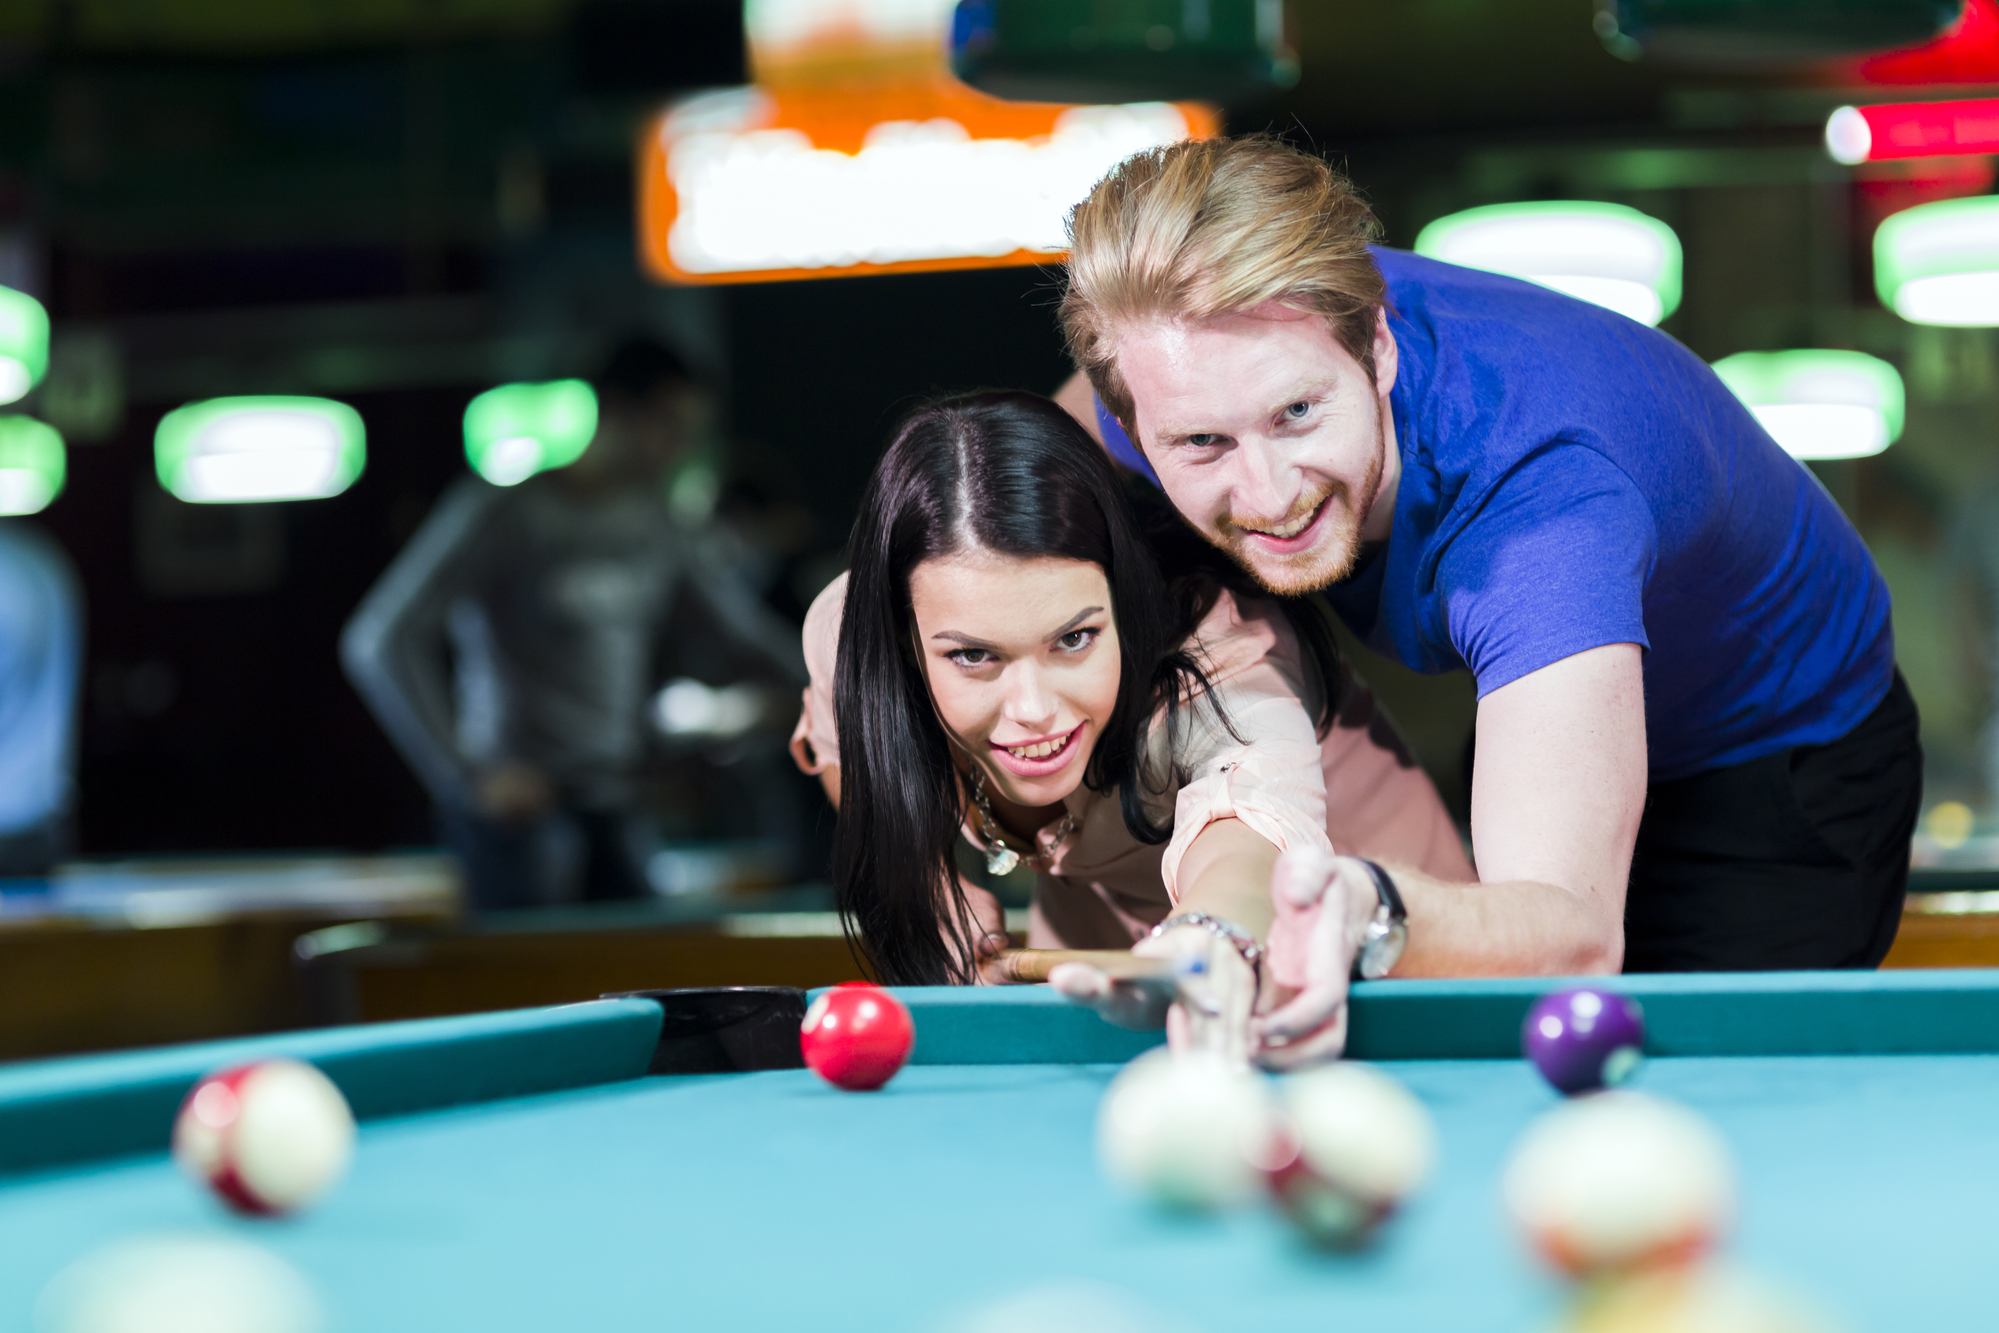 Young handsome man and woman flirting while playing billiards